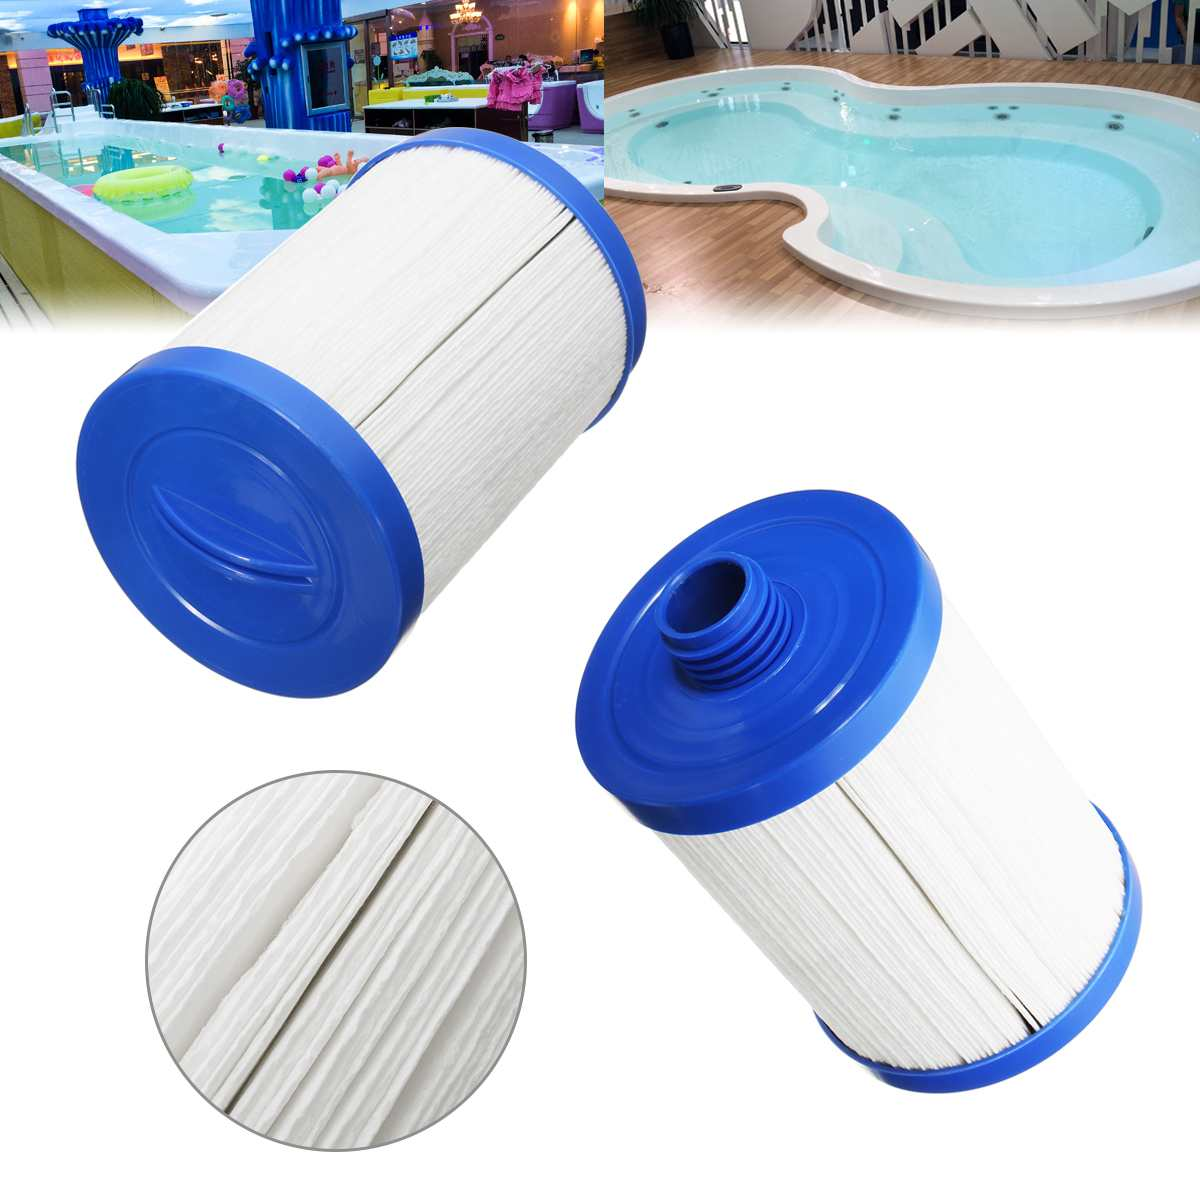 Filter Cartridge Replacement For Sapphire   Cyclone Monarch LA Spas Hot Tub PoolSpa Filter Semi-Circular Handle